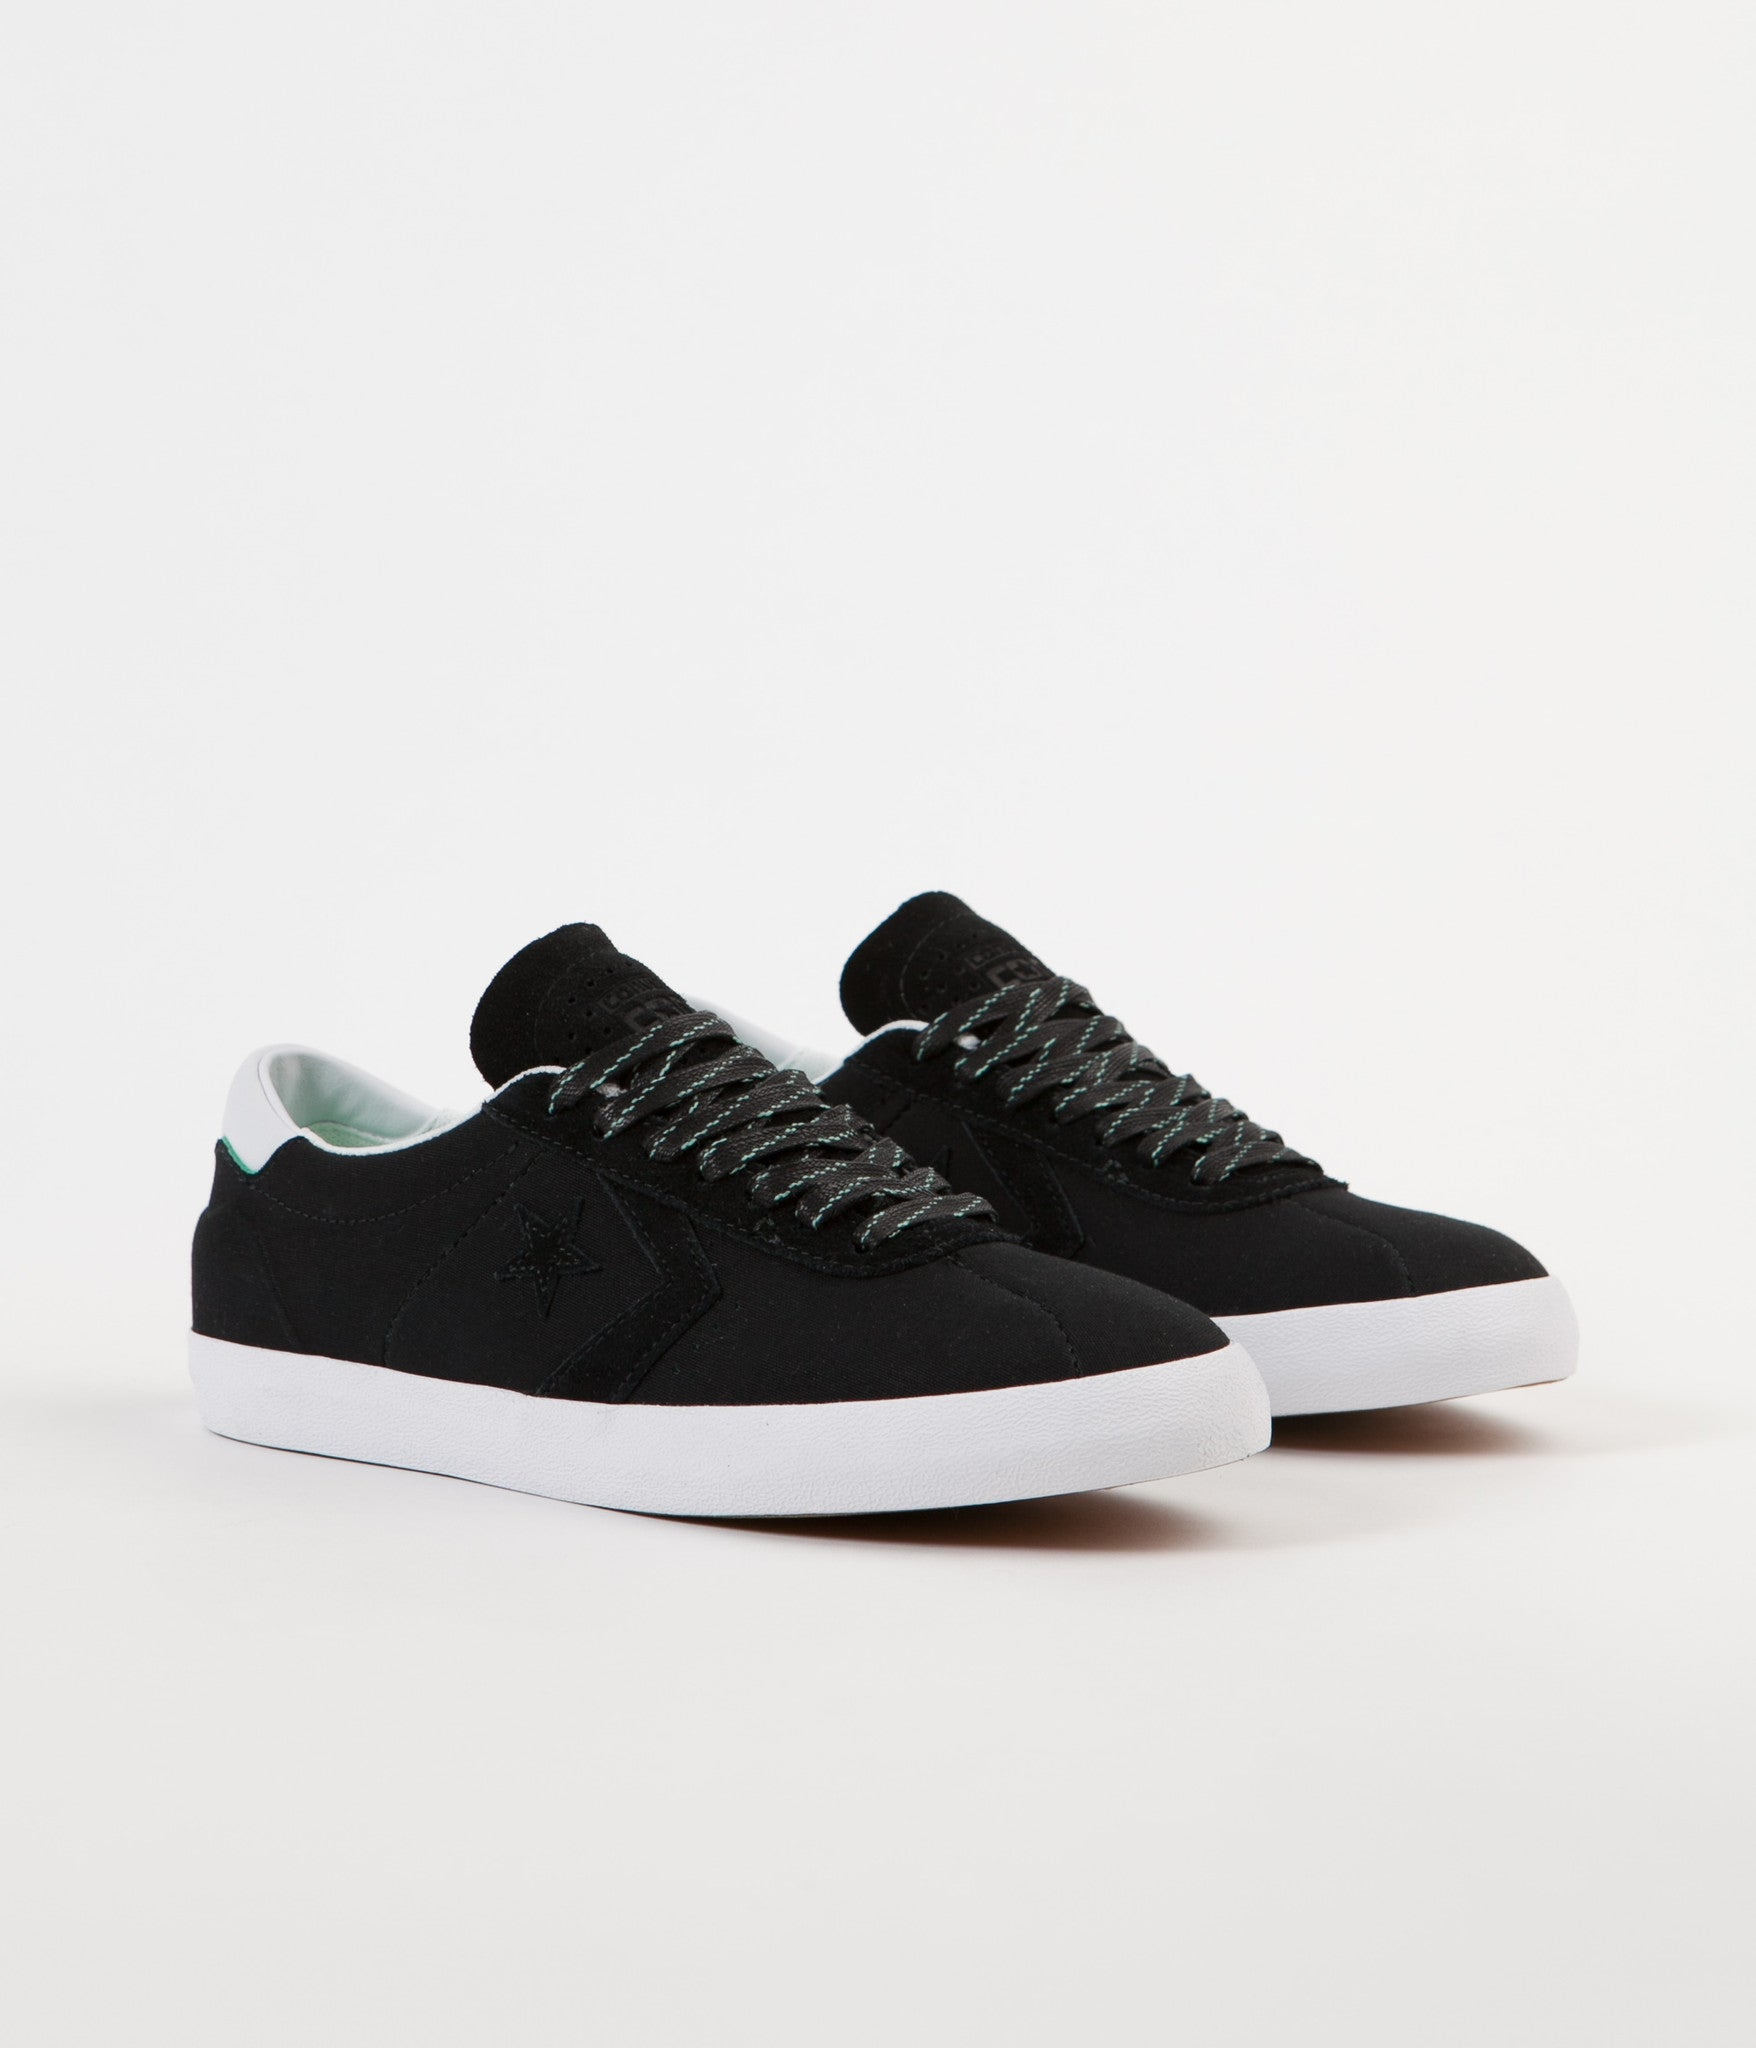 Converse Breakpoint Pro Ox Shoes - Black / White / Green